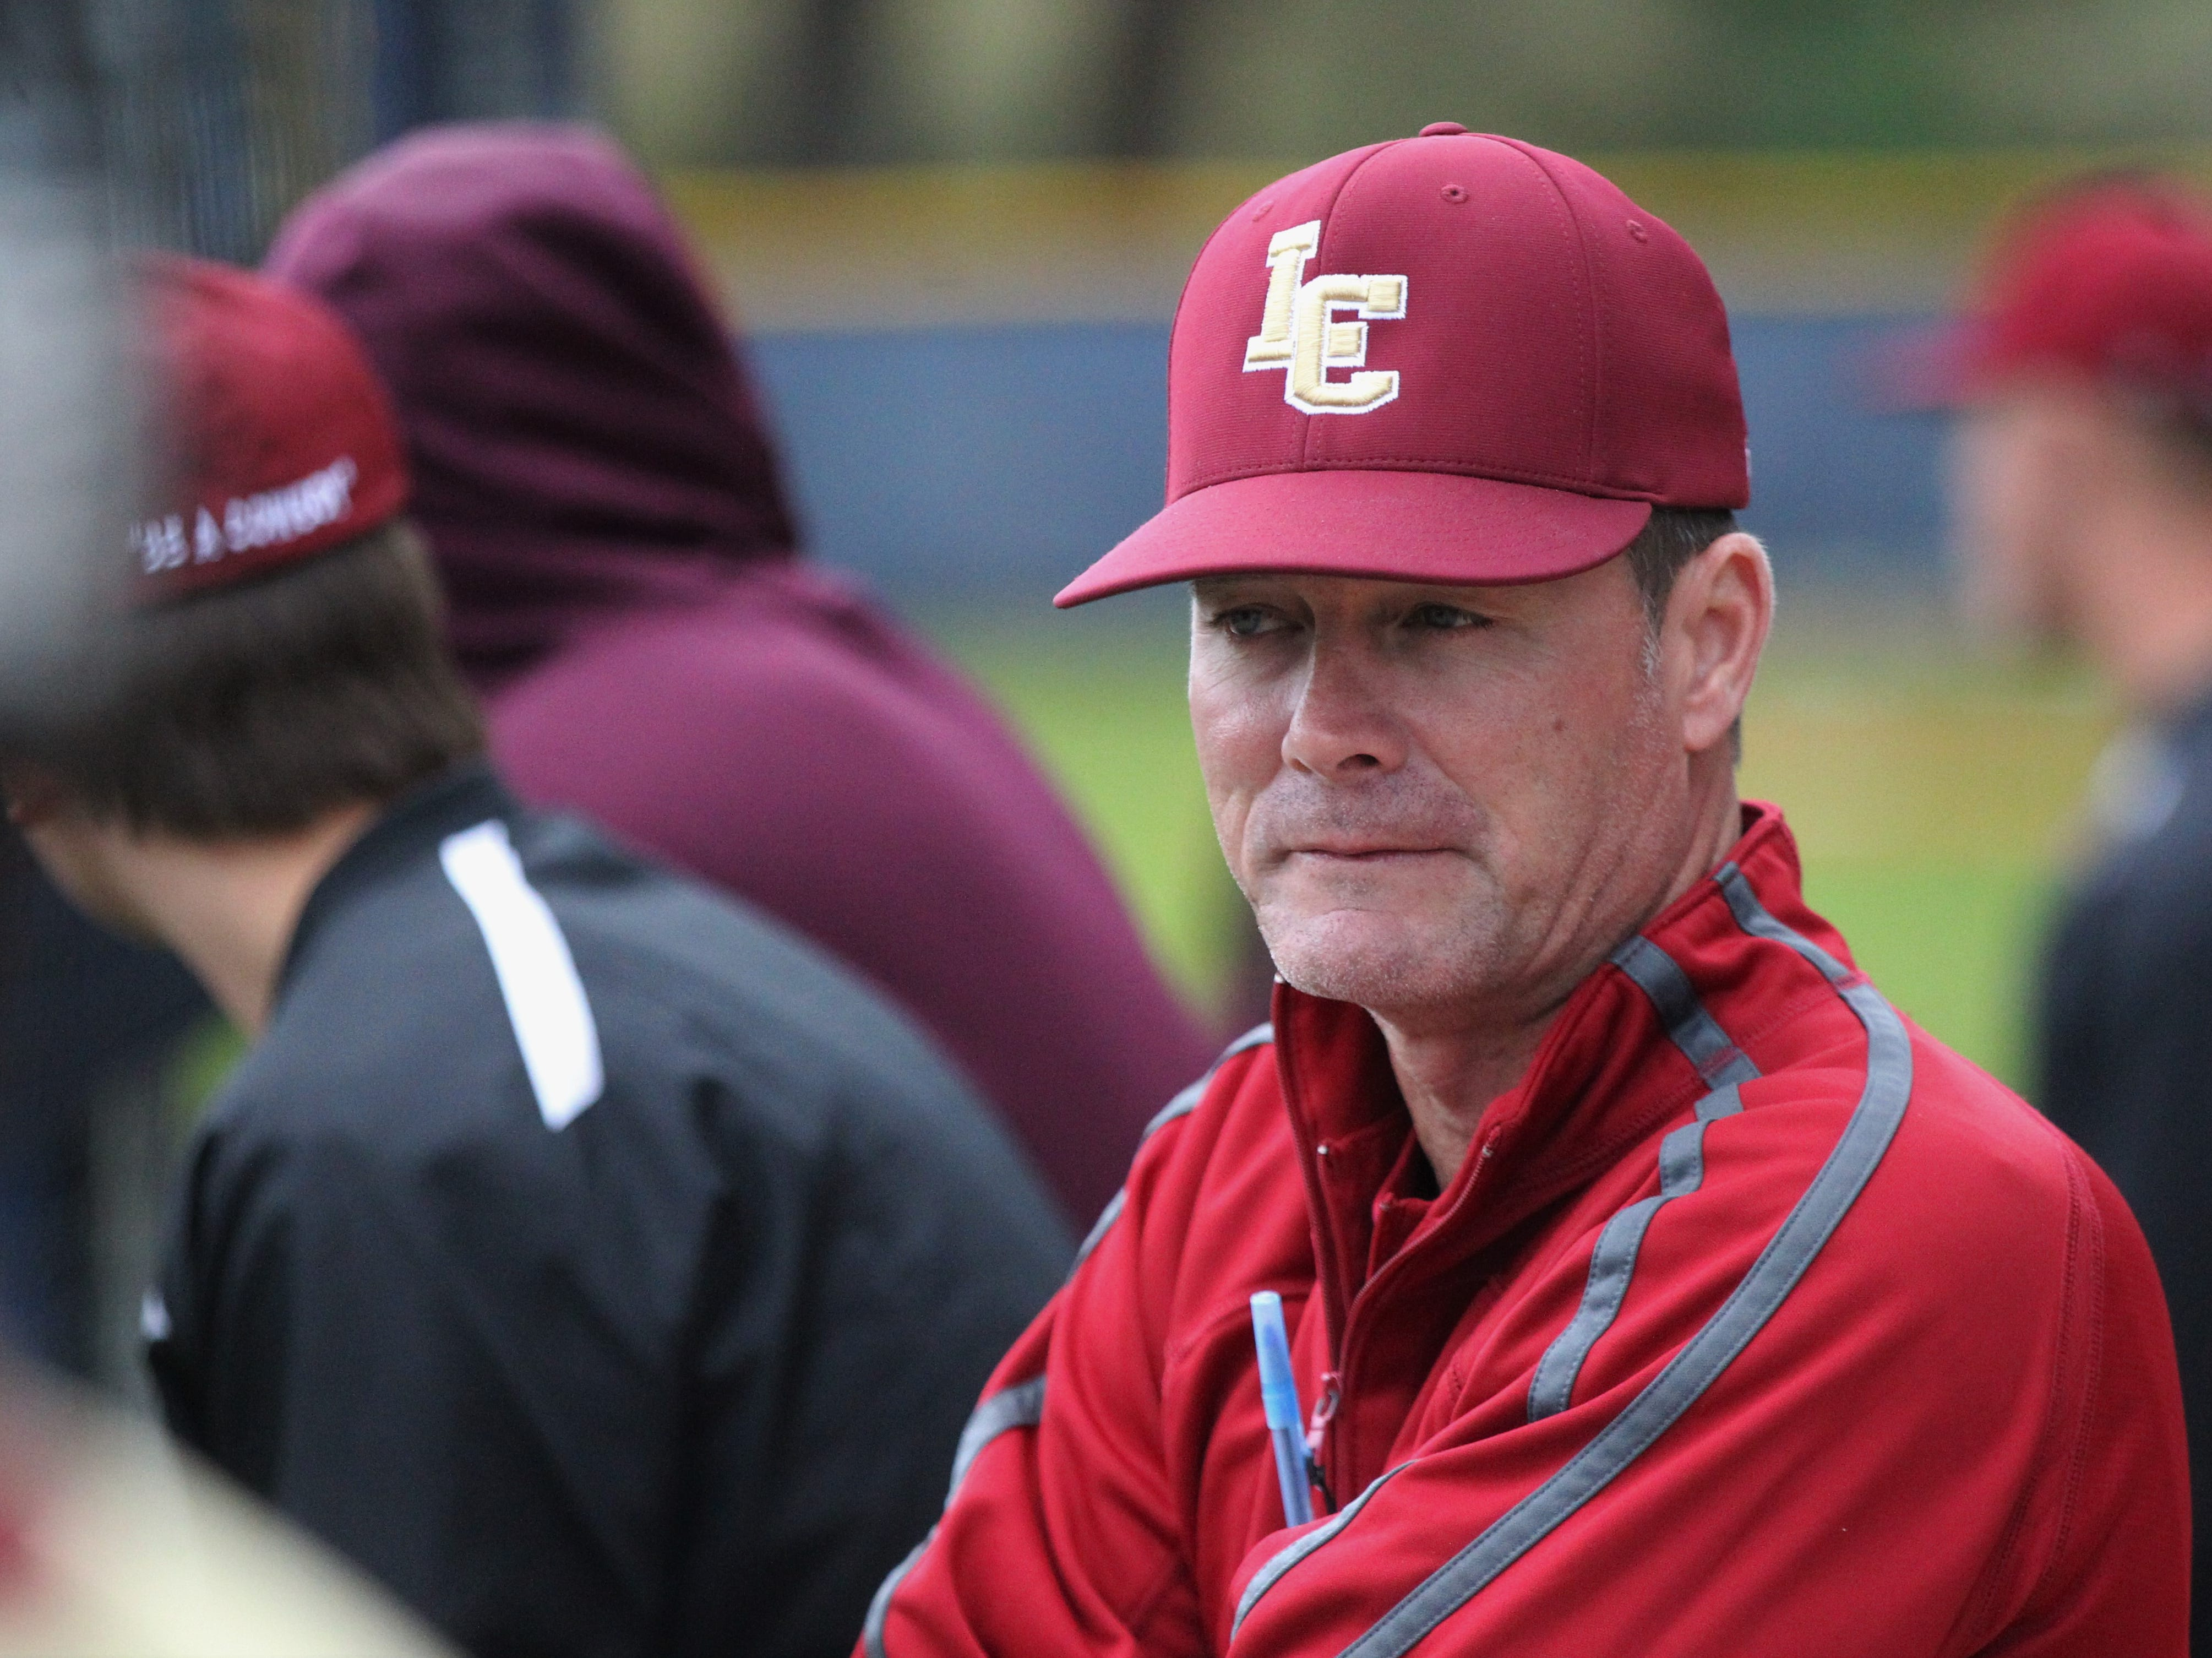 Former Liberty County baseball coach and current assistant principal Tim Davis watches as Liberty County's baseball team went on the road to beat Maclay 8-2 on Saturday, March 16, 2019. The Bulldogs played their first game following their head coach Corey Crum's tragic death six days ago.